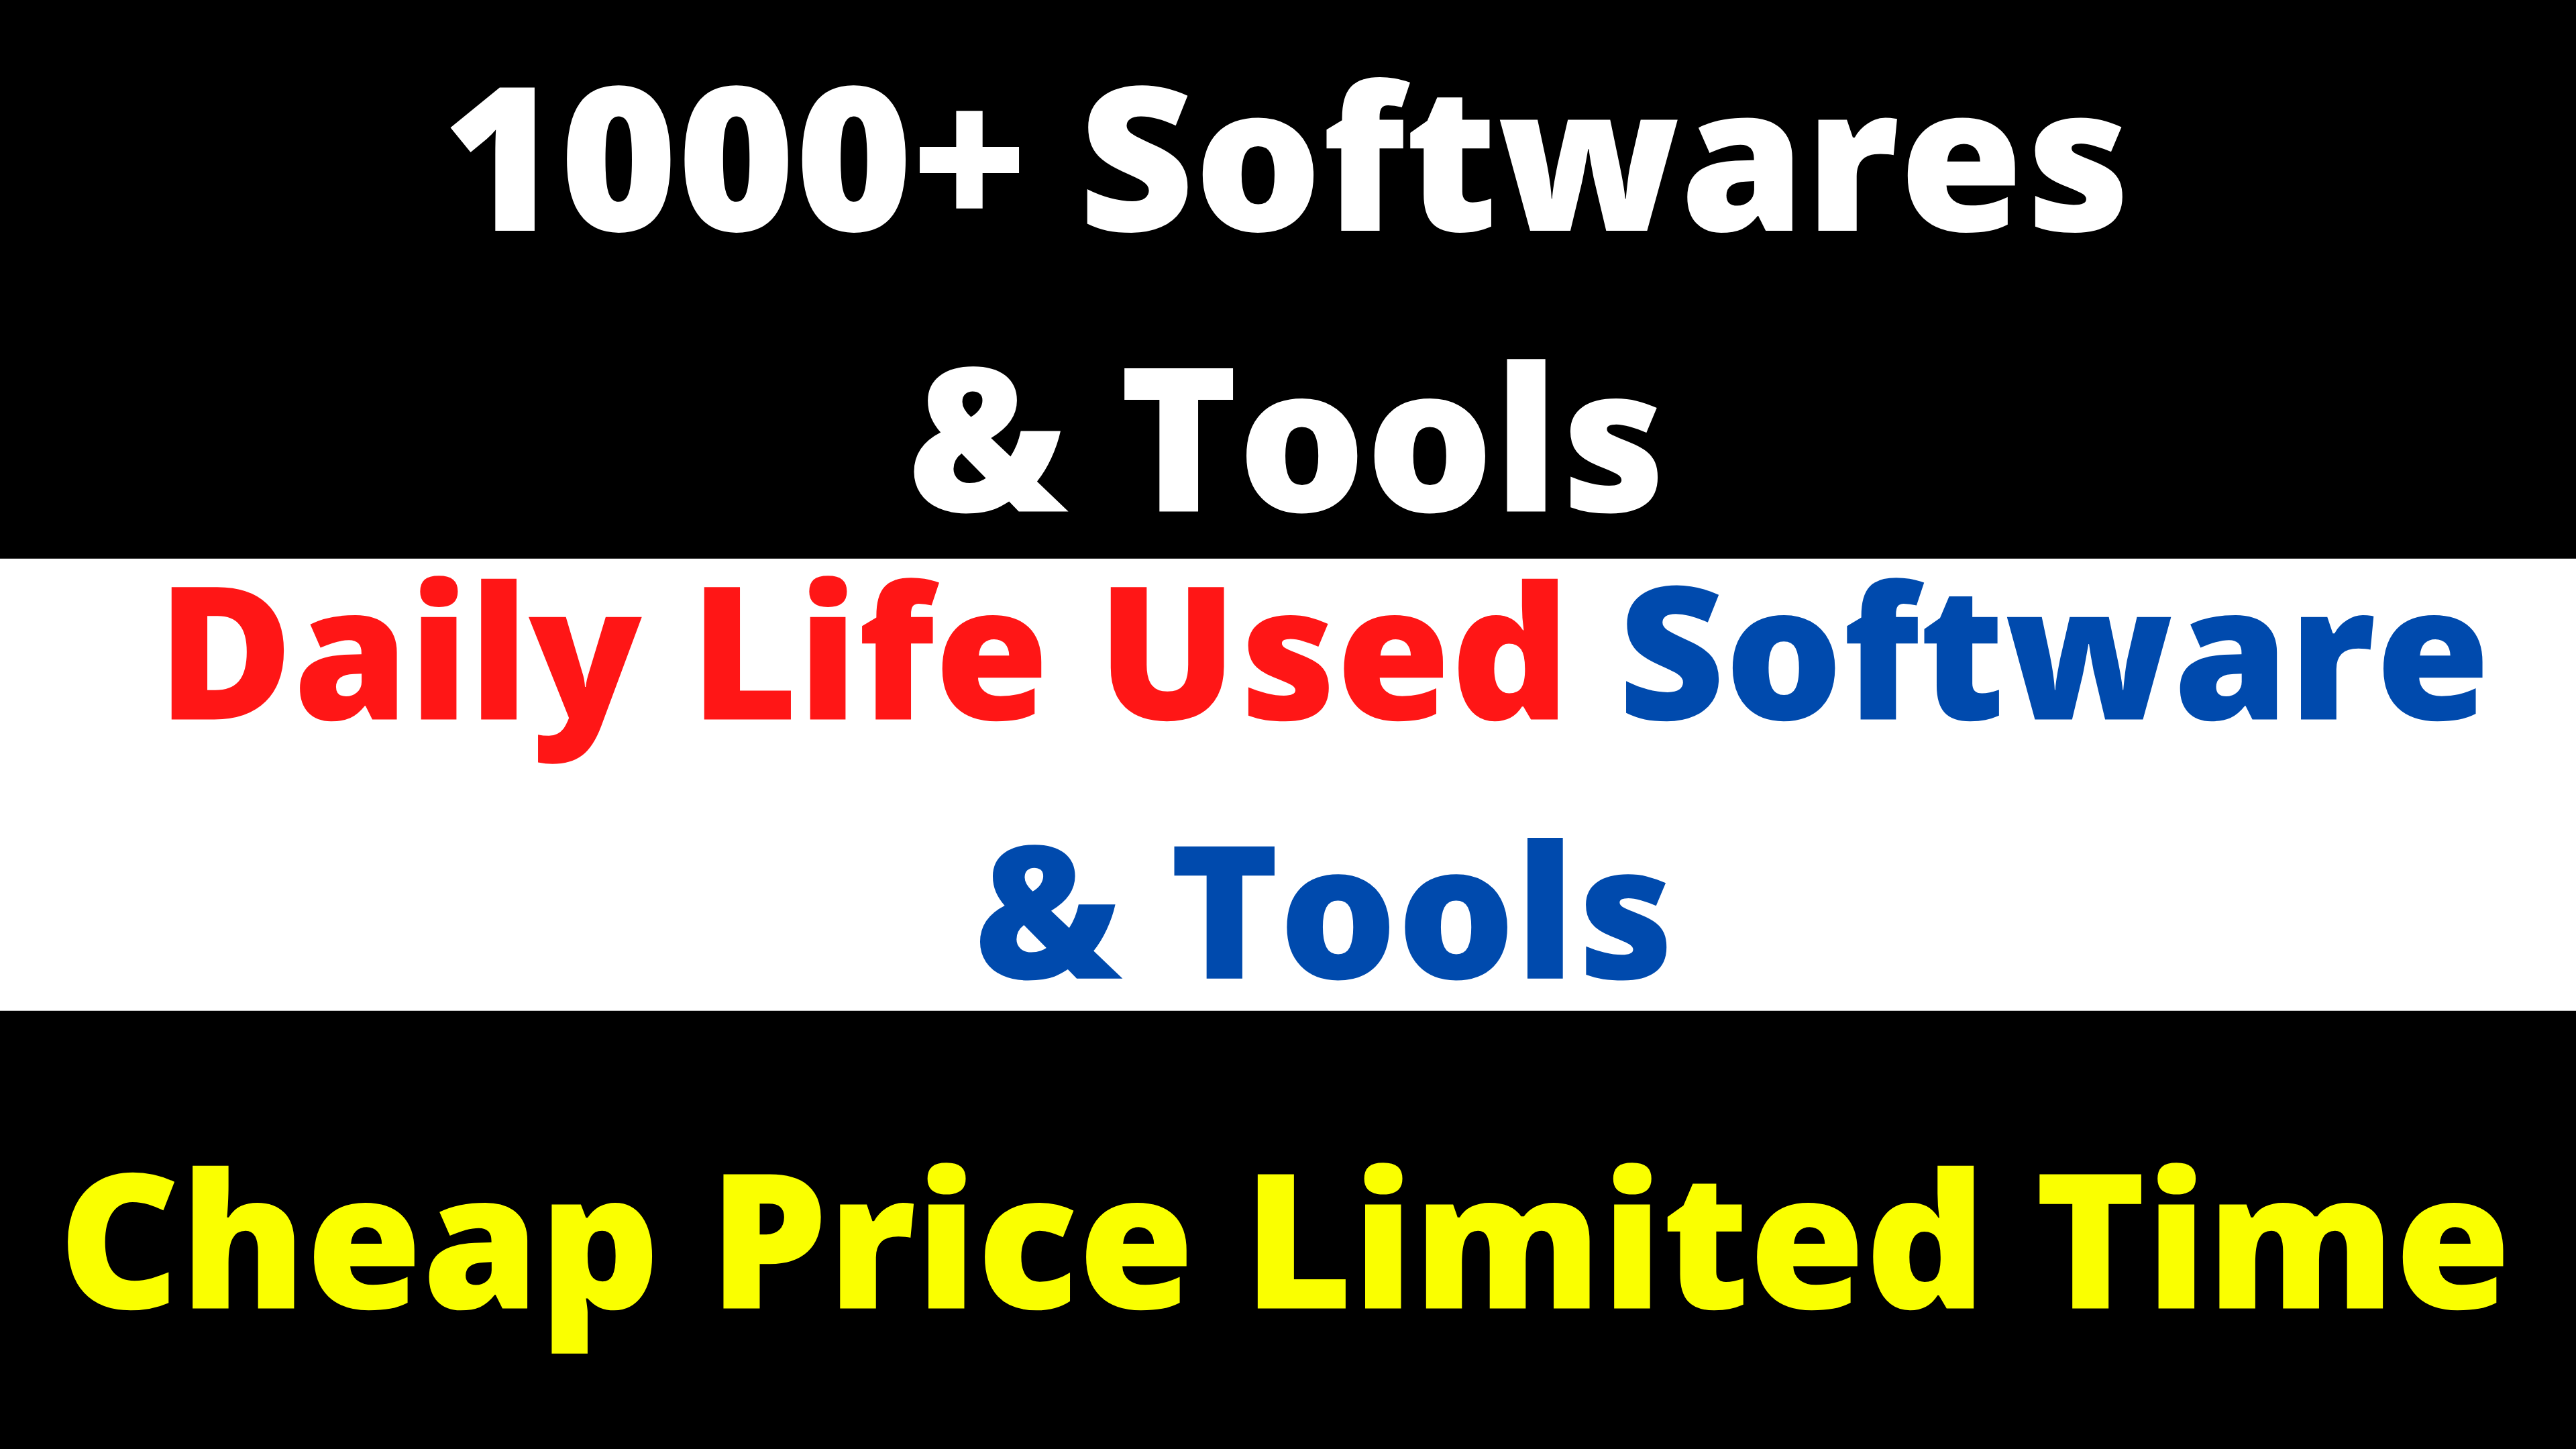 Daily Life Used 1000+ Softwares And Tools For SEO Traffic And Marketing